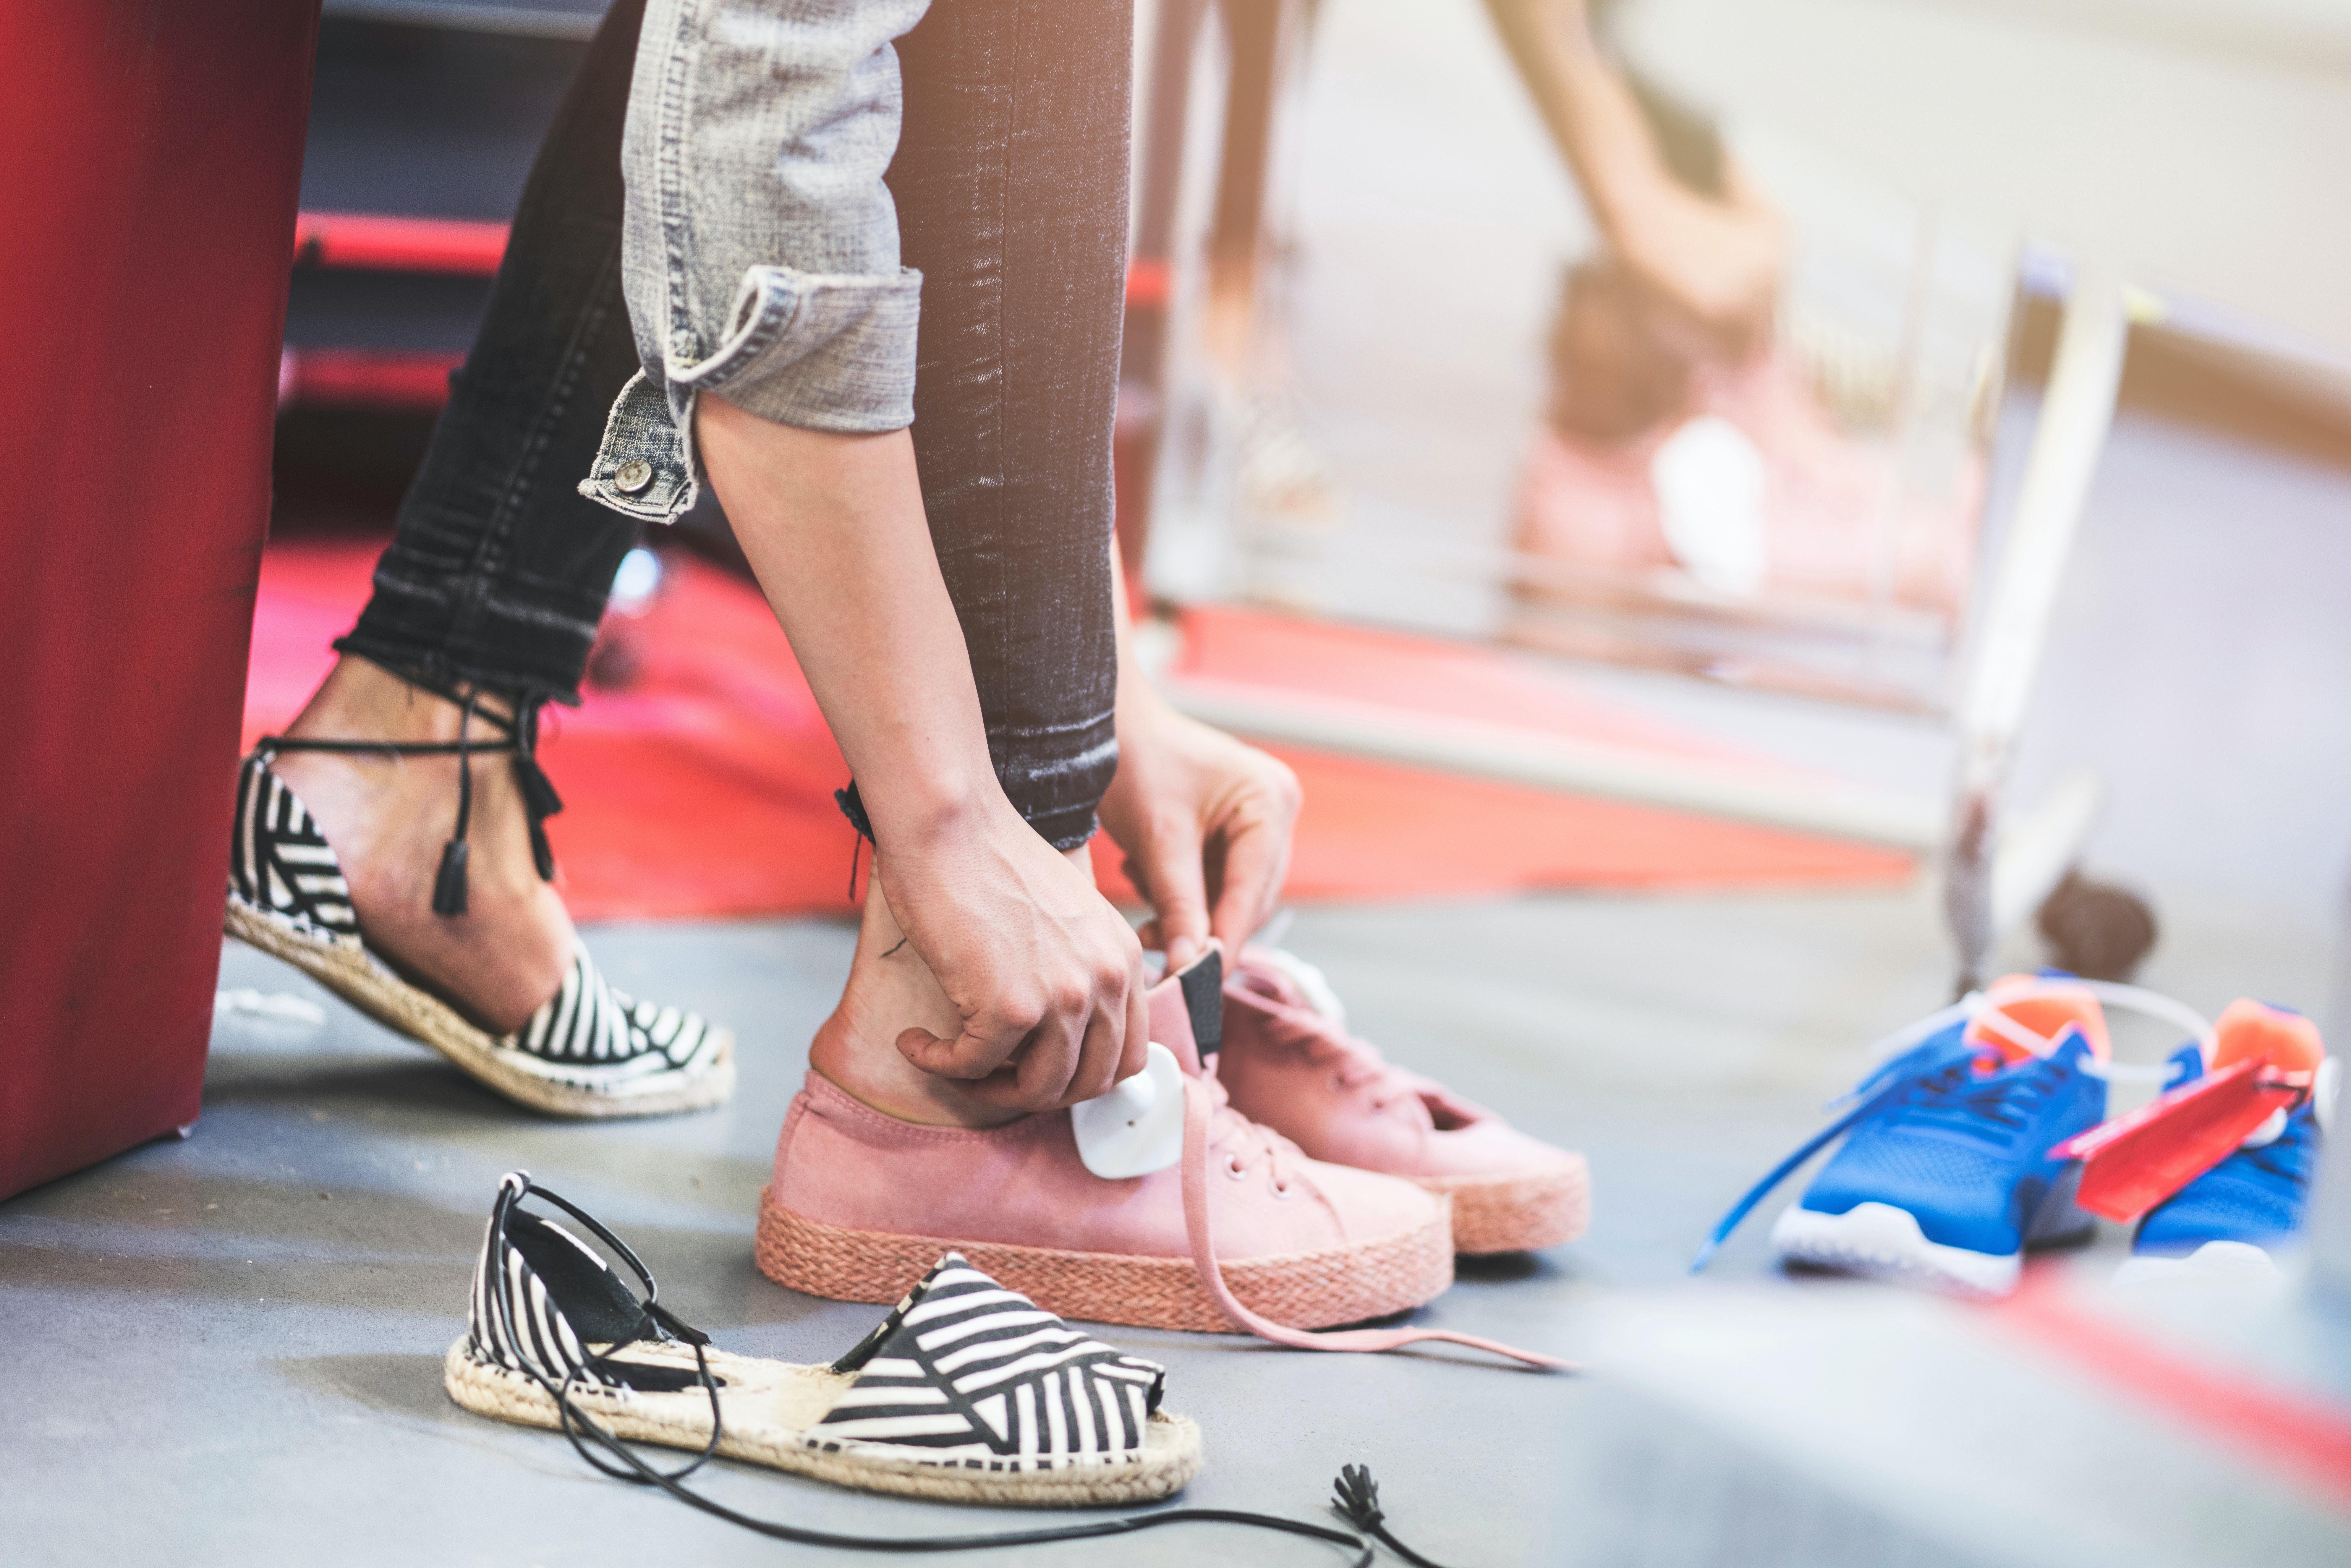 7 Shoe Shopping Tips For Wide Feet, So